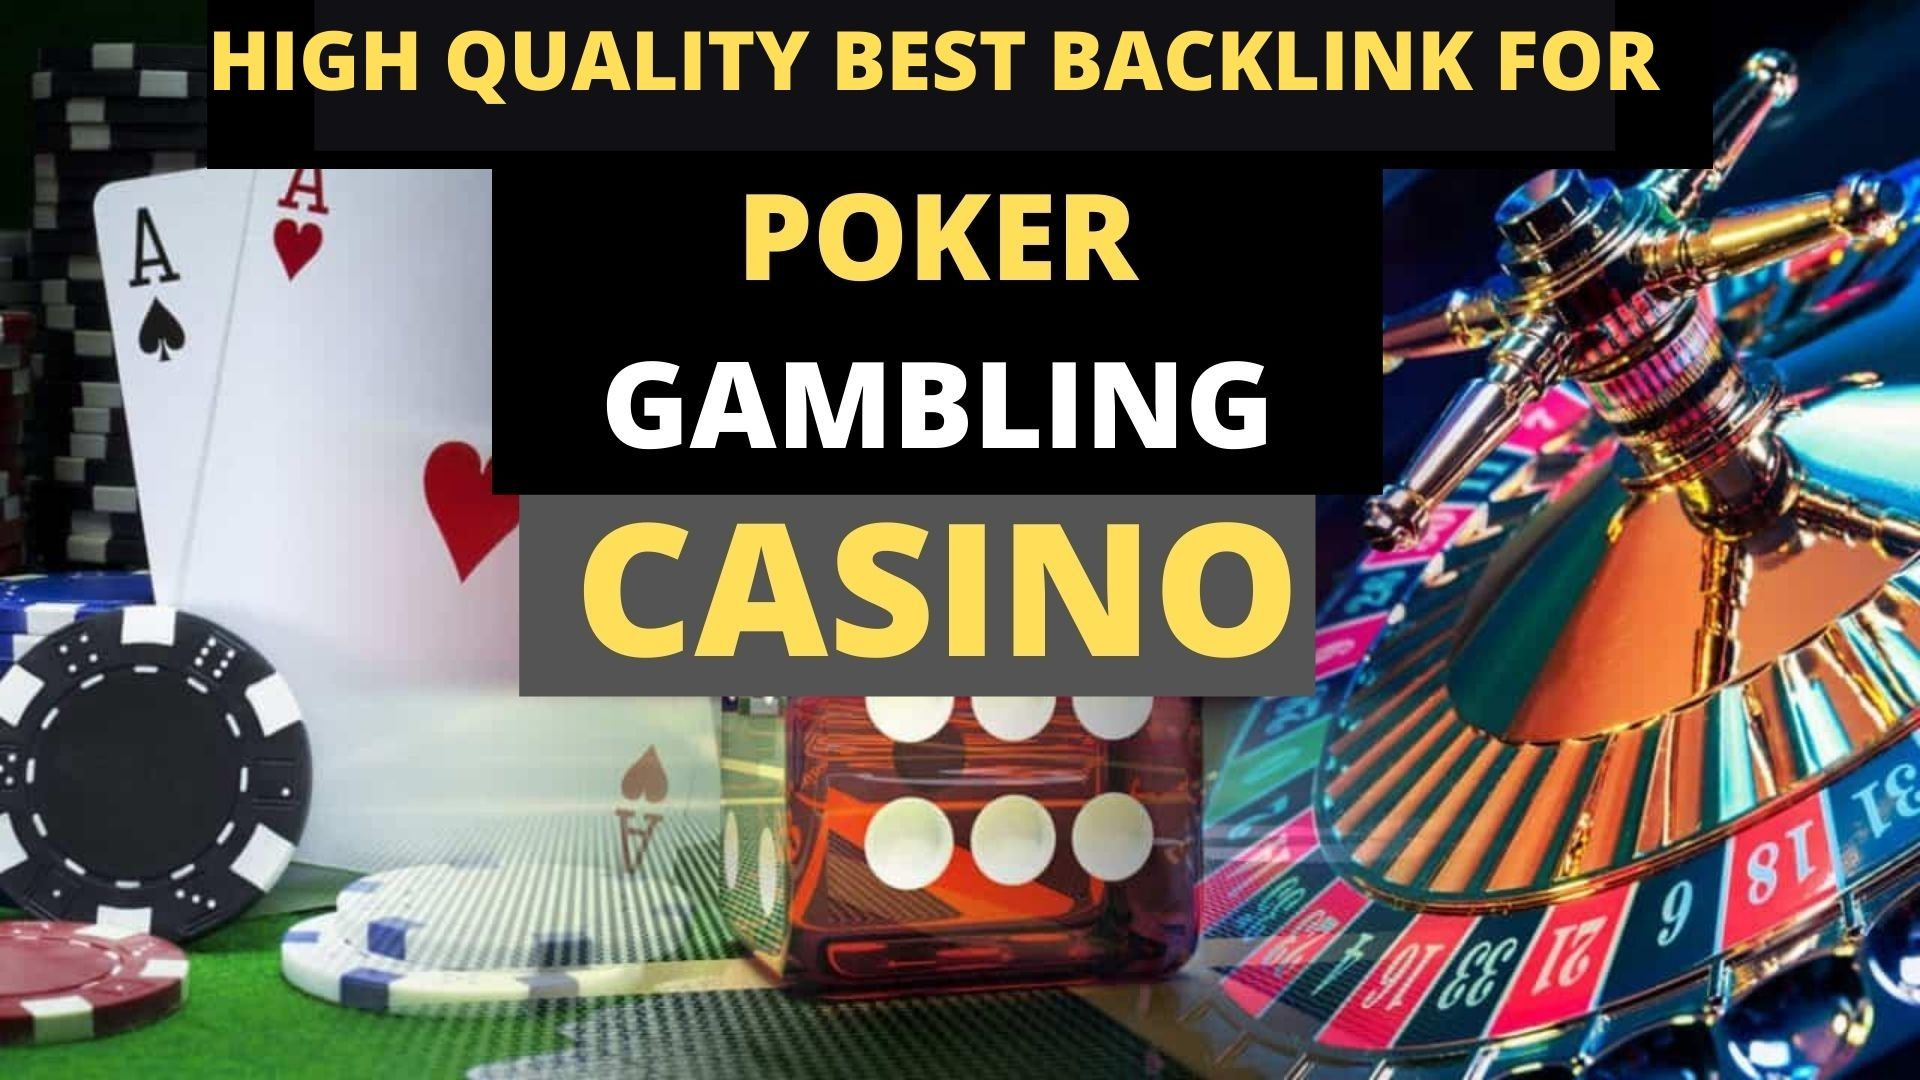 600 CASINO/POKER Gambling,  Judi Bola,  Google 1st Page Ranking & Relate PBN Backlink with BLOG POST